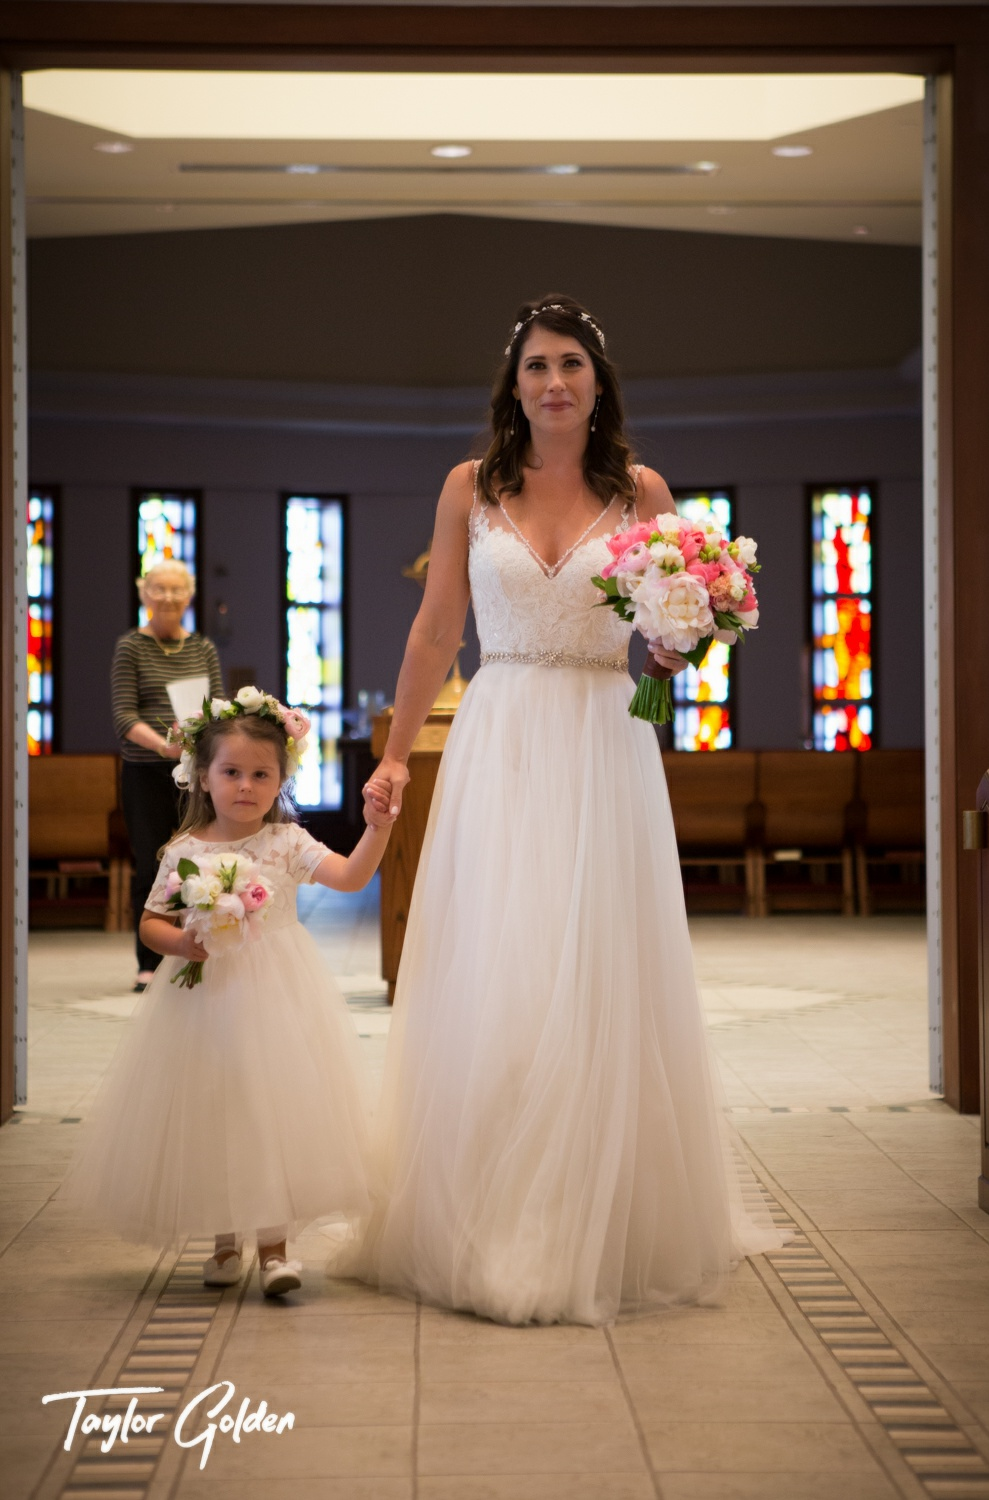 Houston Wedding Photographer Taylor Golden22.jpg